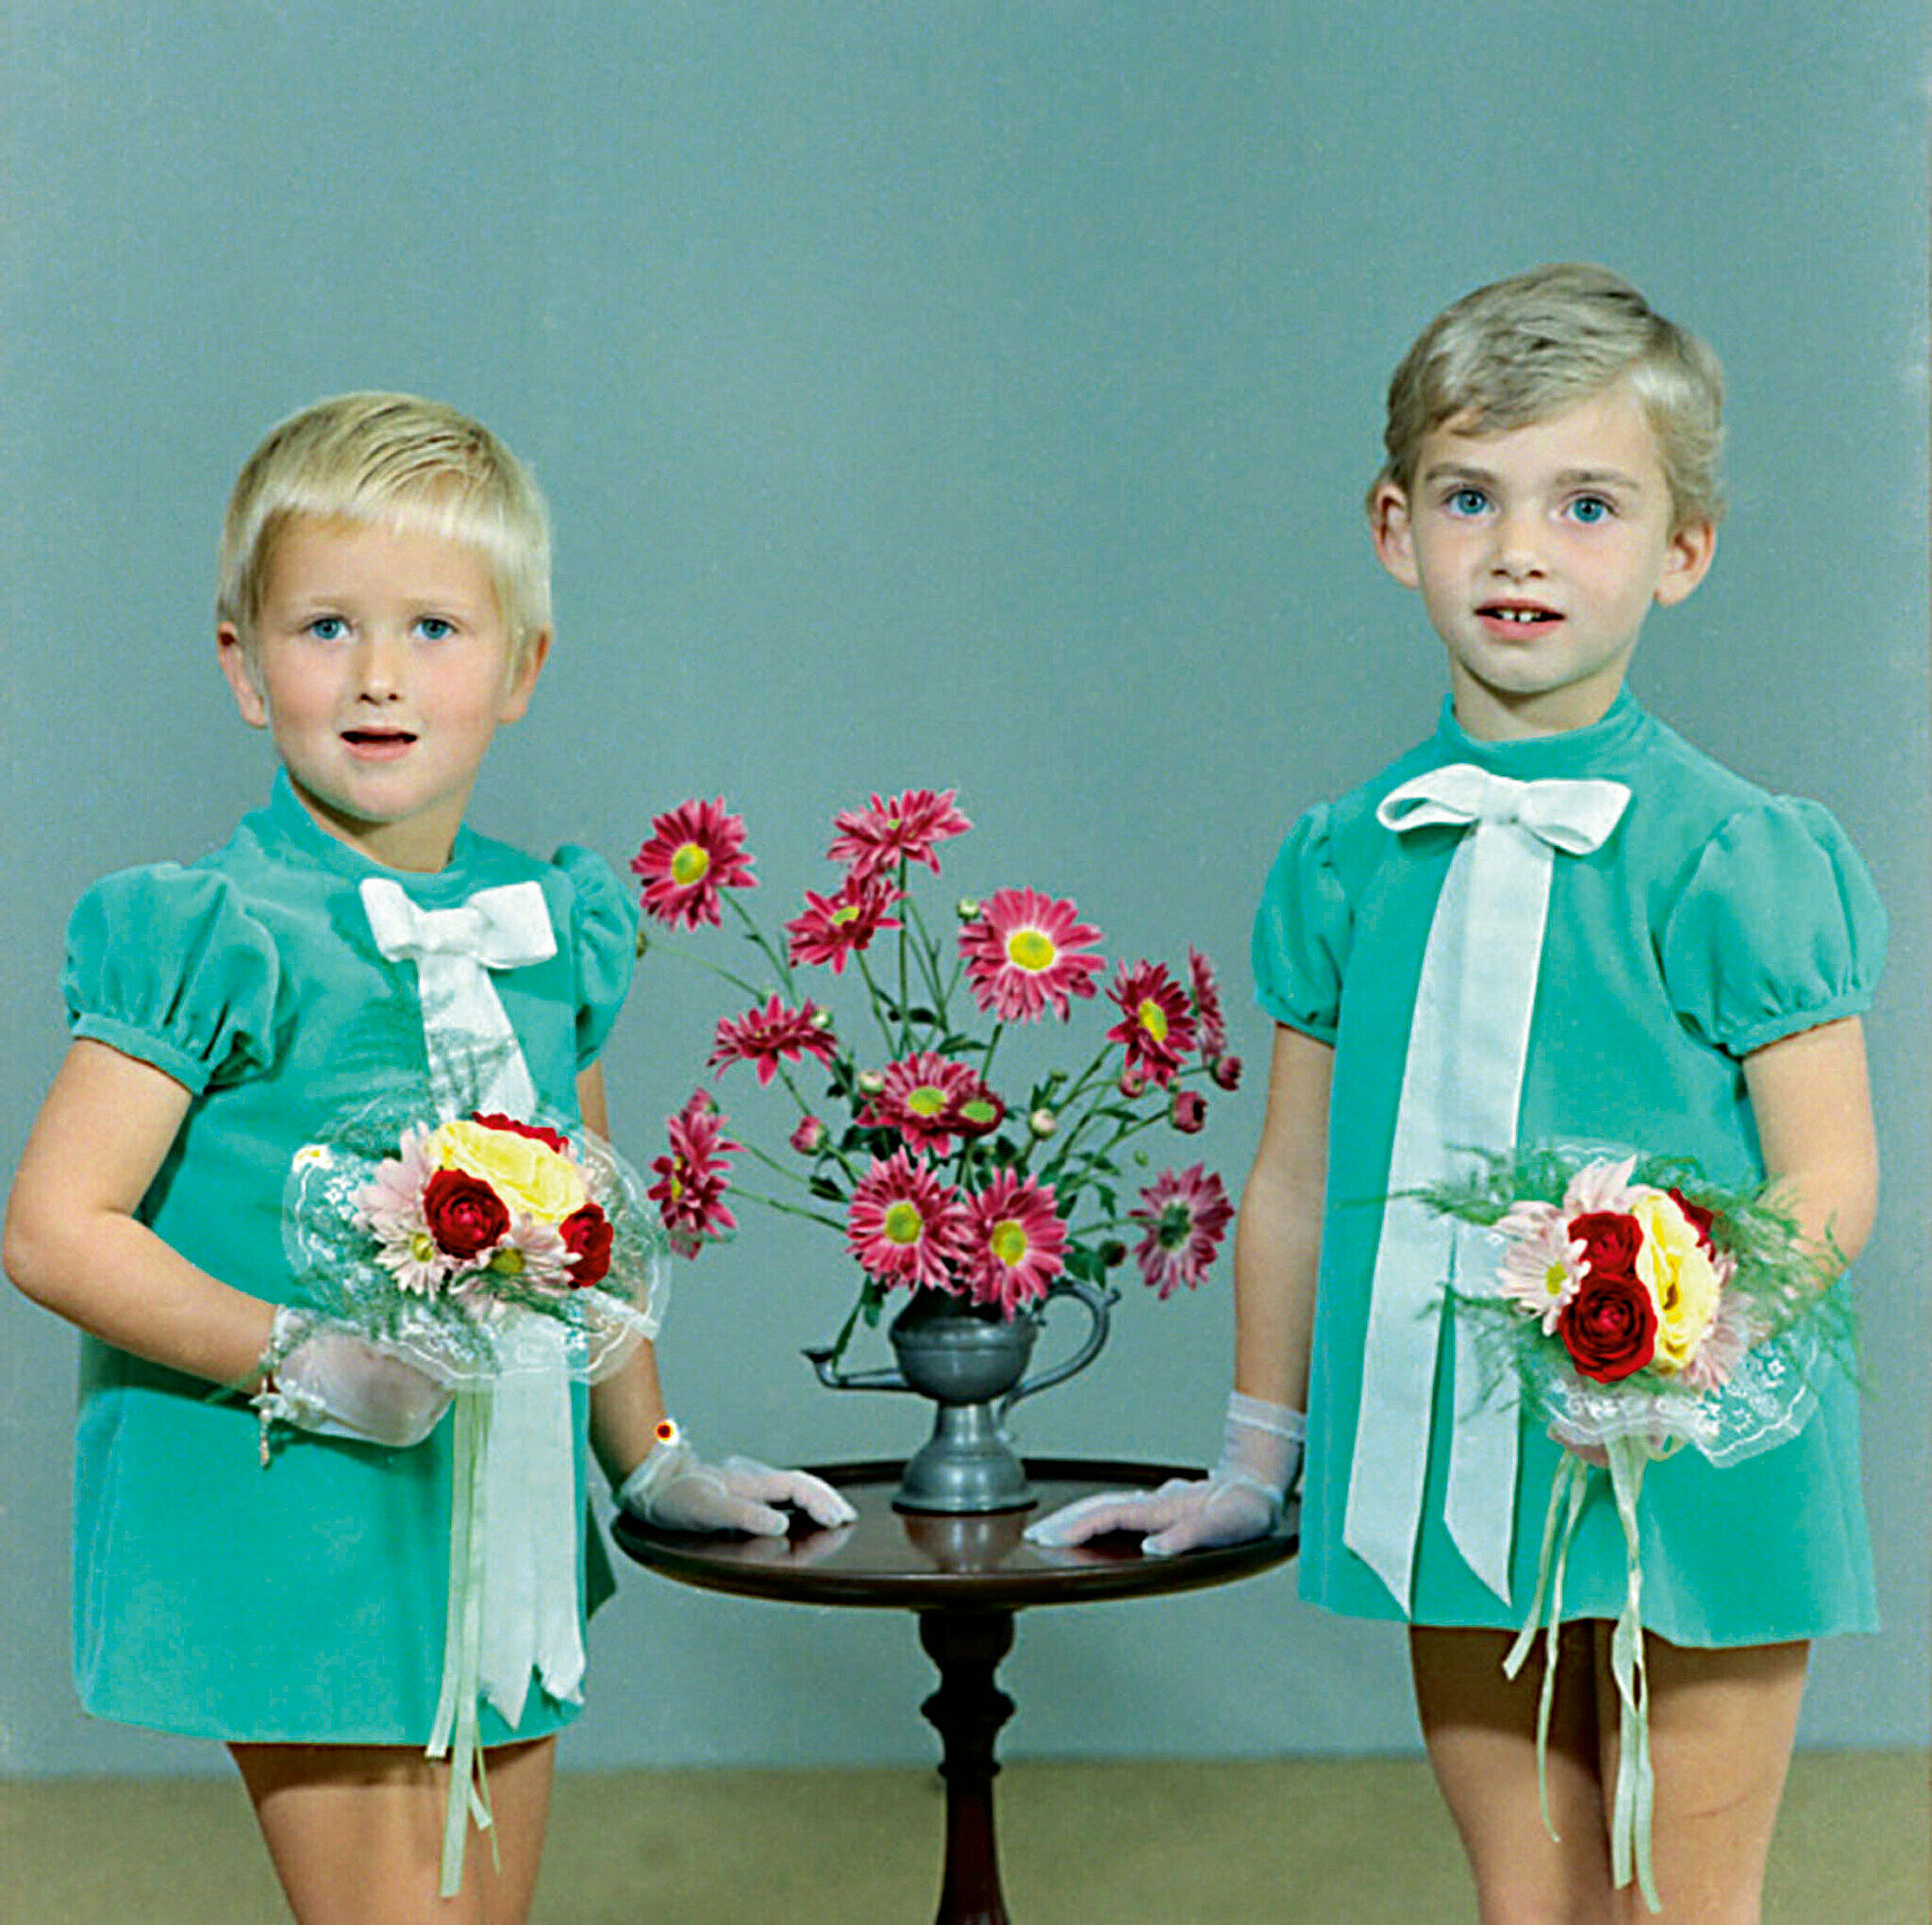 Wayne Koestenbaum's image of two children posing for a portrait. Each holds a bright bouquet of flowers.